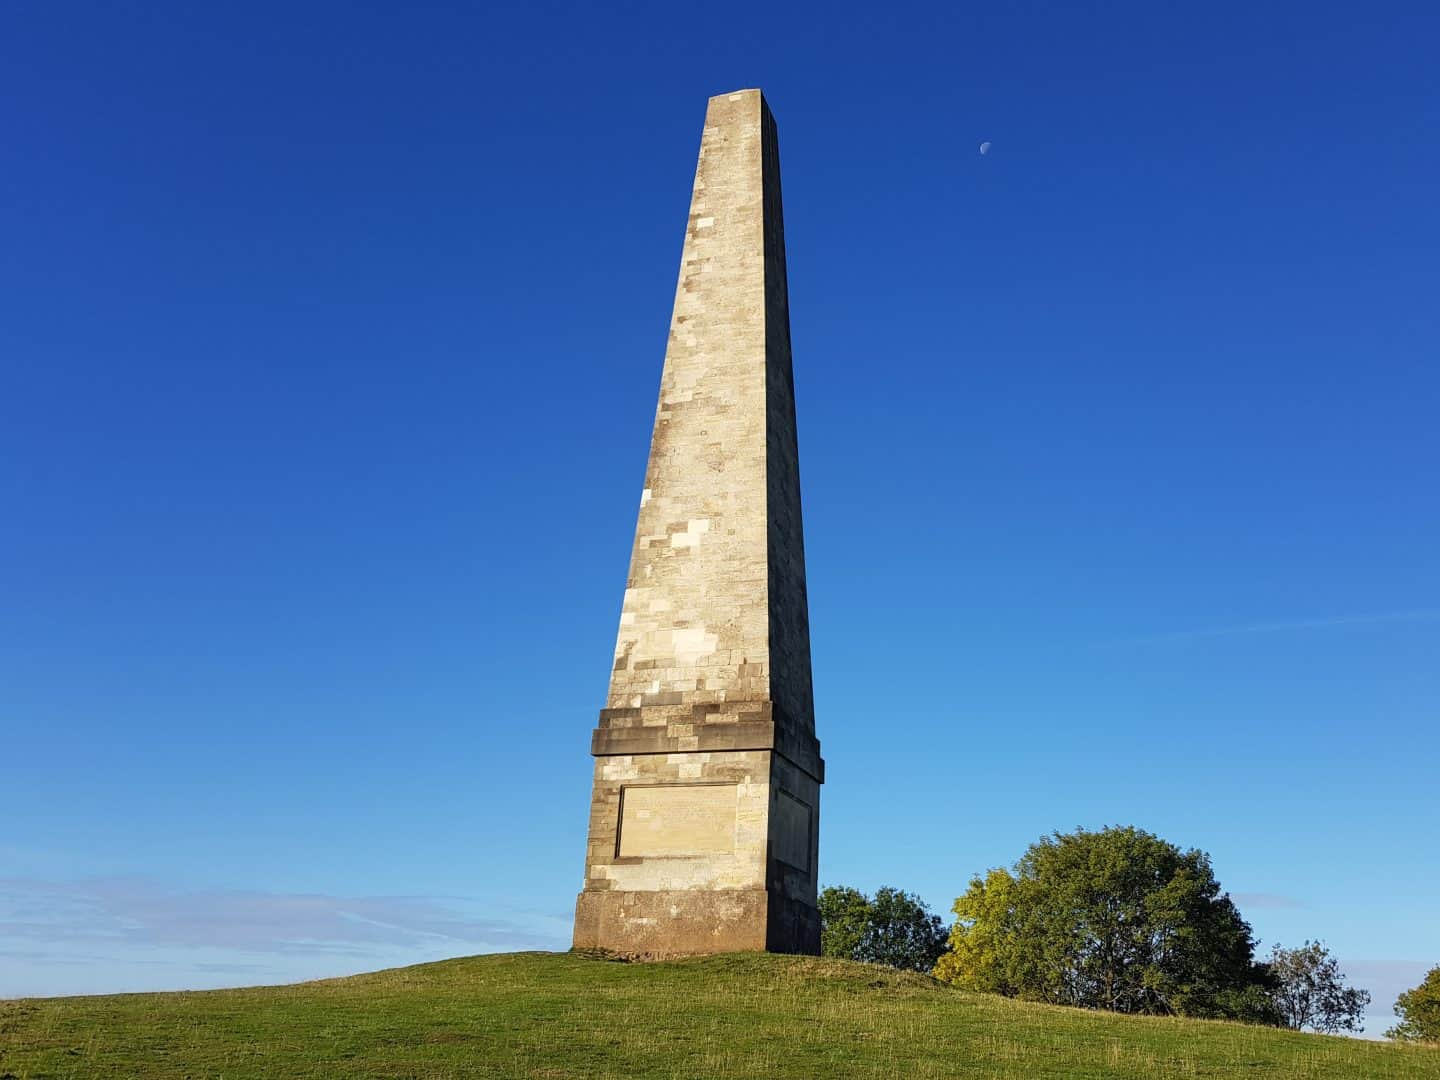 Obelisk Monument at Eastnor with blue sky and moon faintly showing